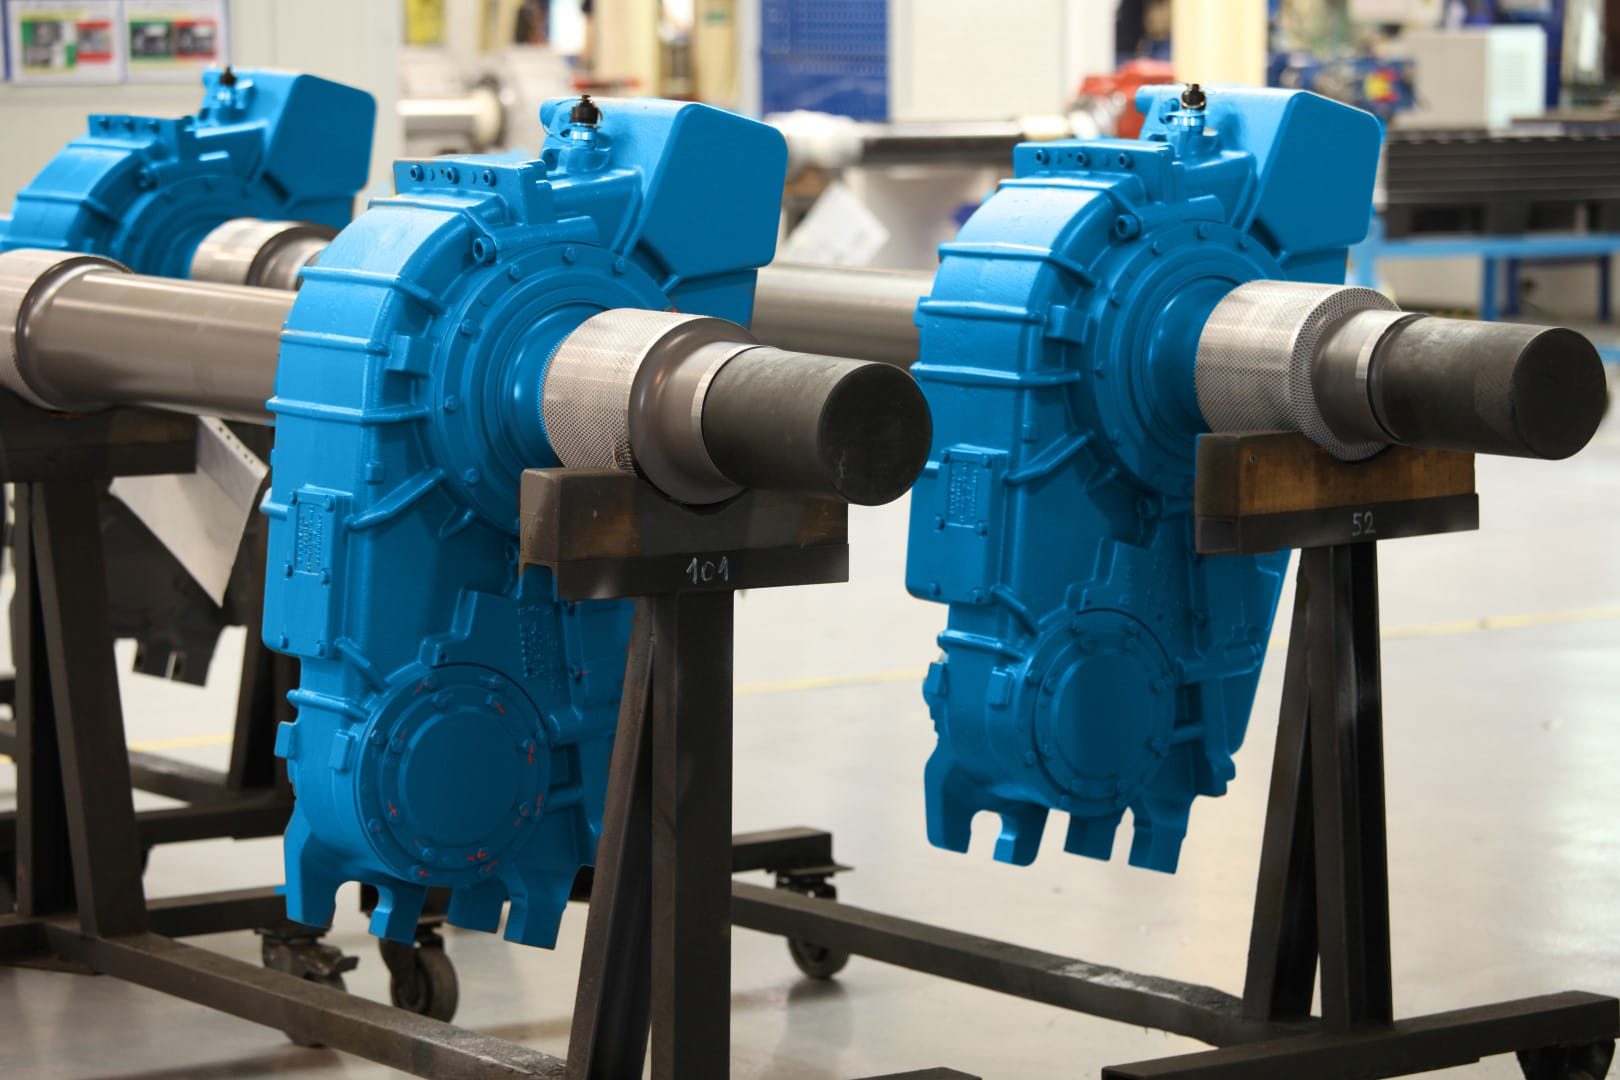 Railway gearboxes of IGW rail